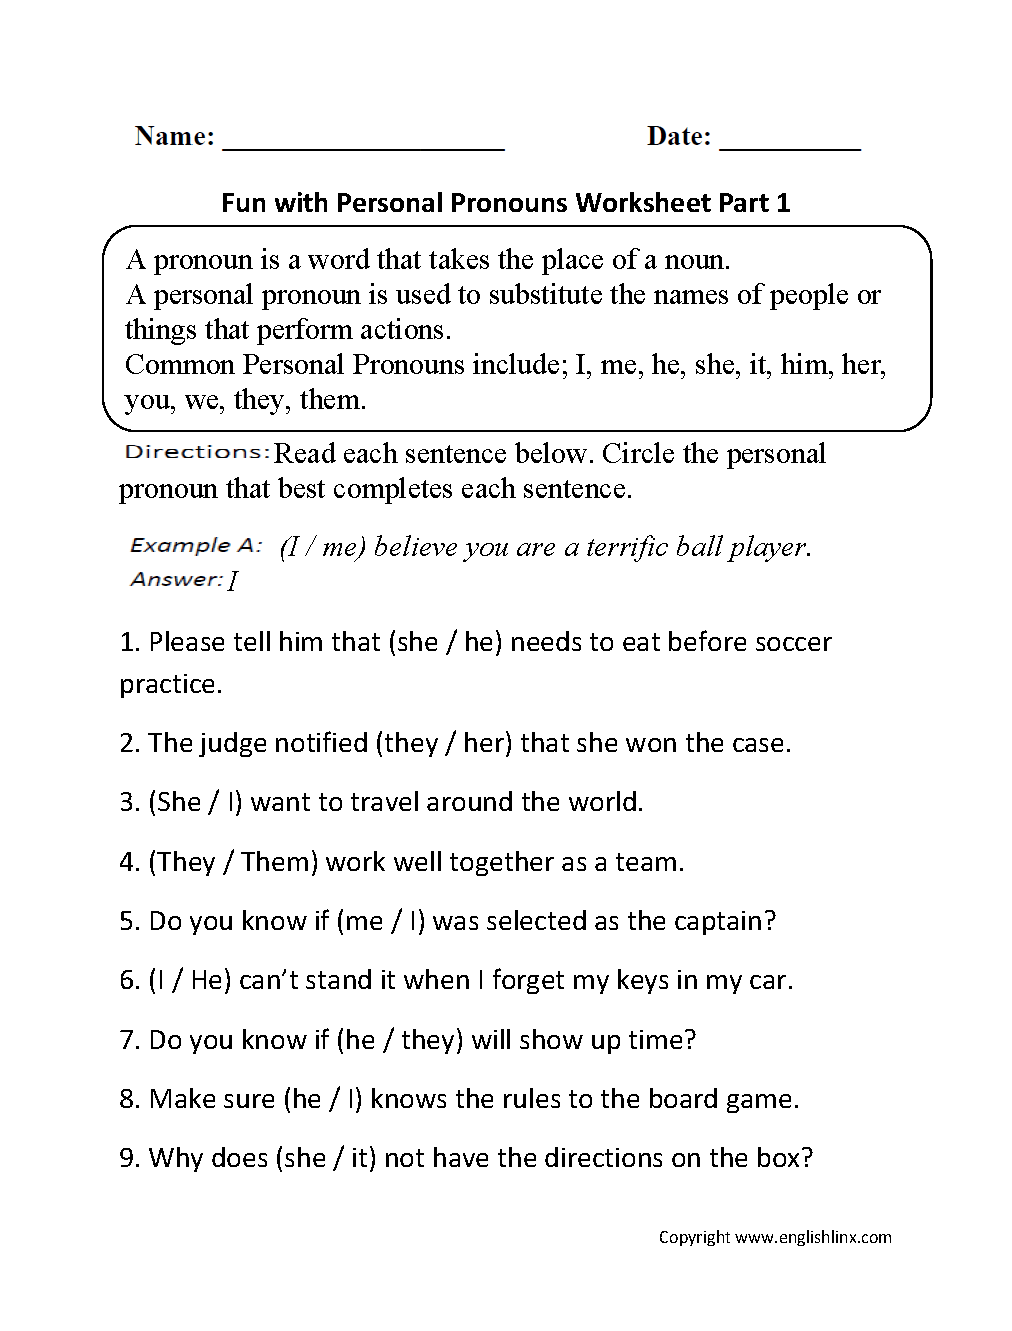 Workbooks reflexive pronoun worksheets for 2nd grade : Pronouns Worksheets | Personal Pronouns Worksheets